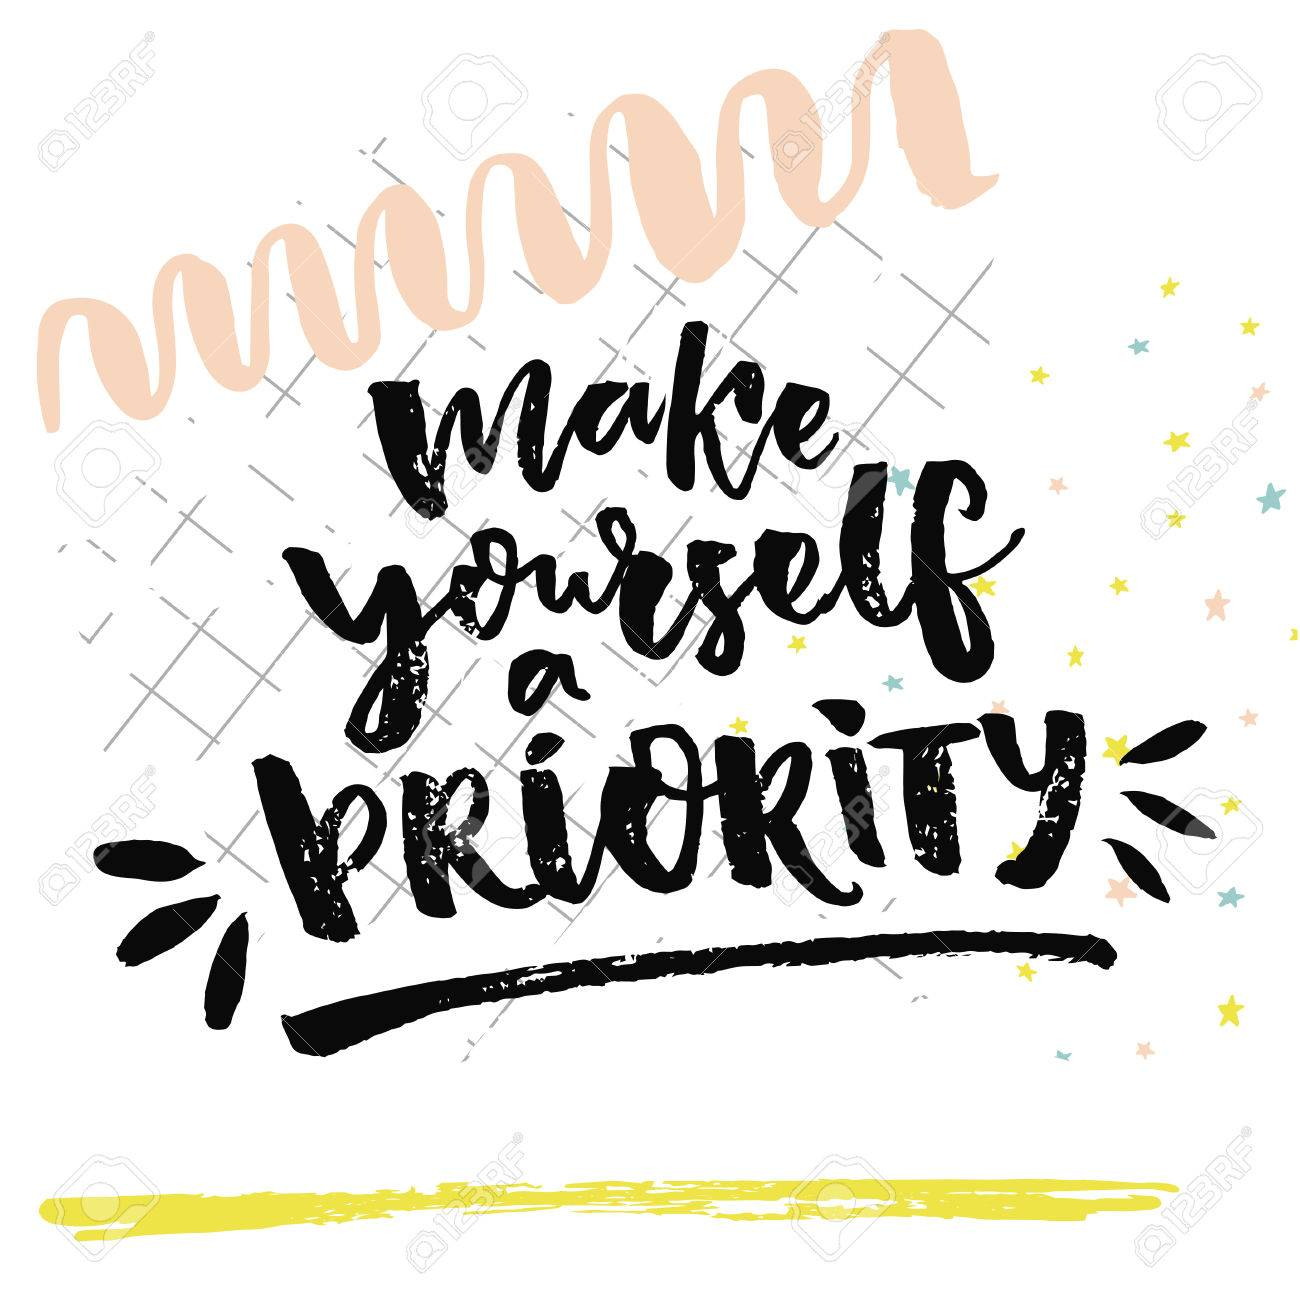 make yourself a priority inspirational quote about love yourself